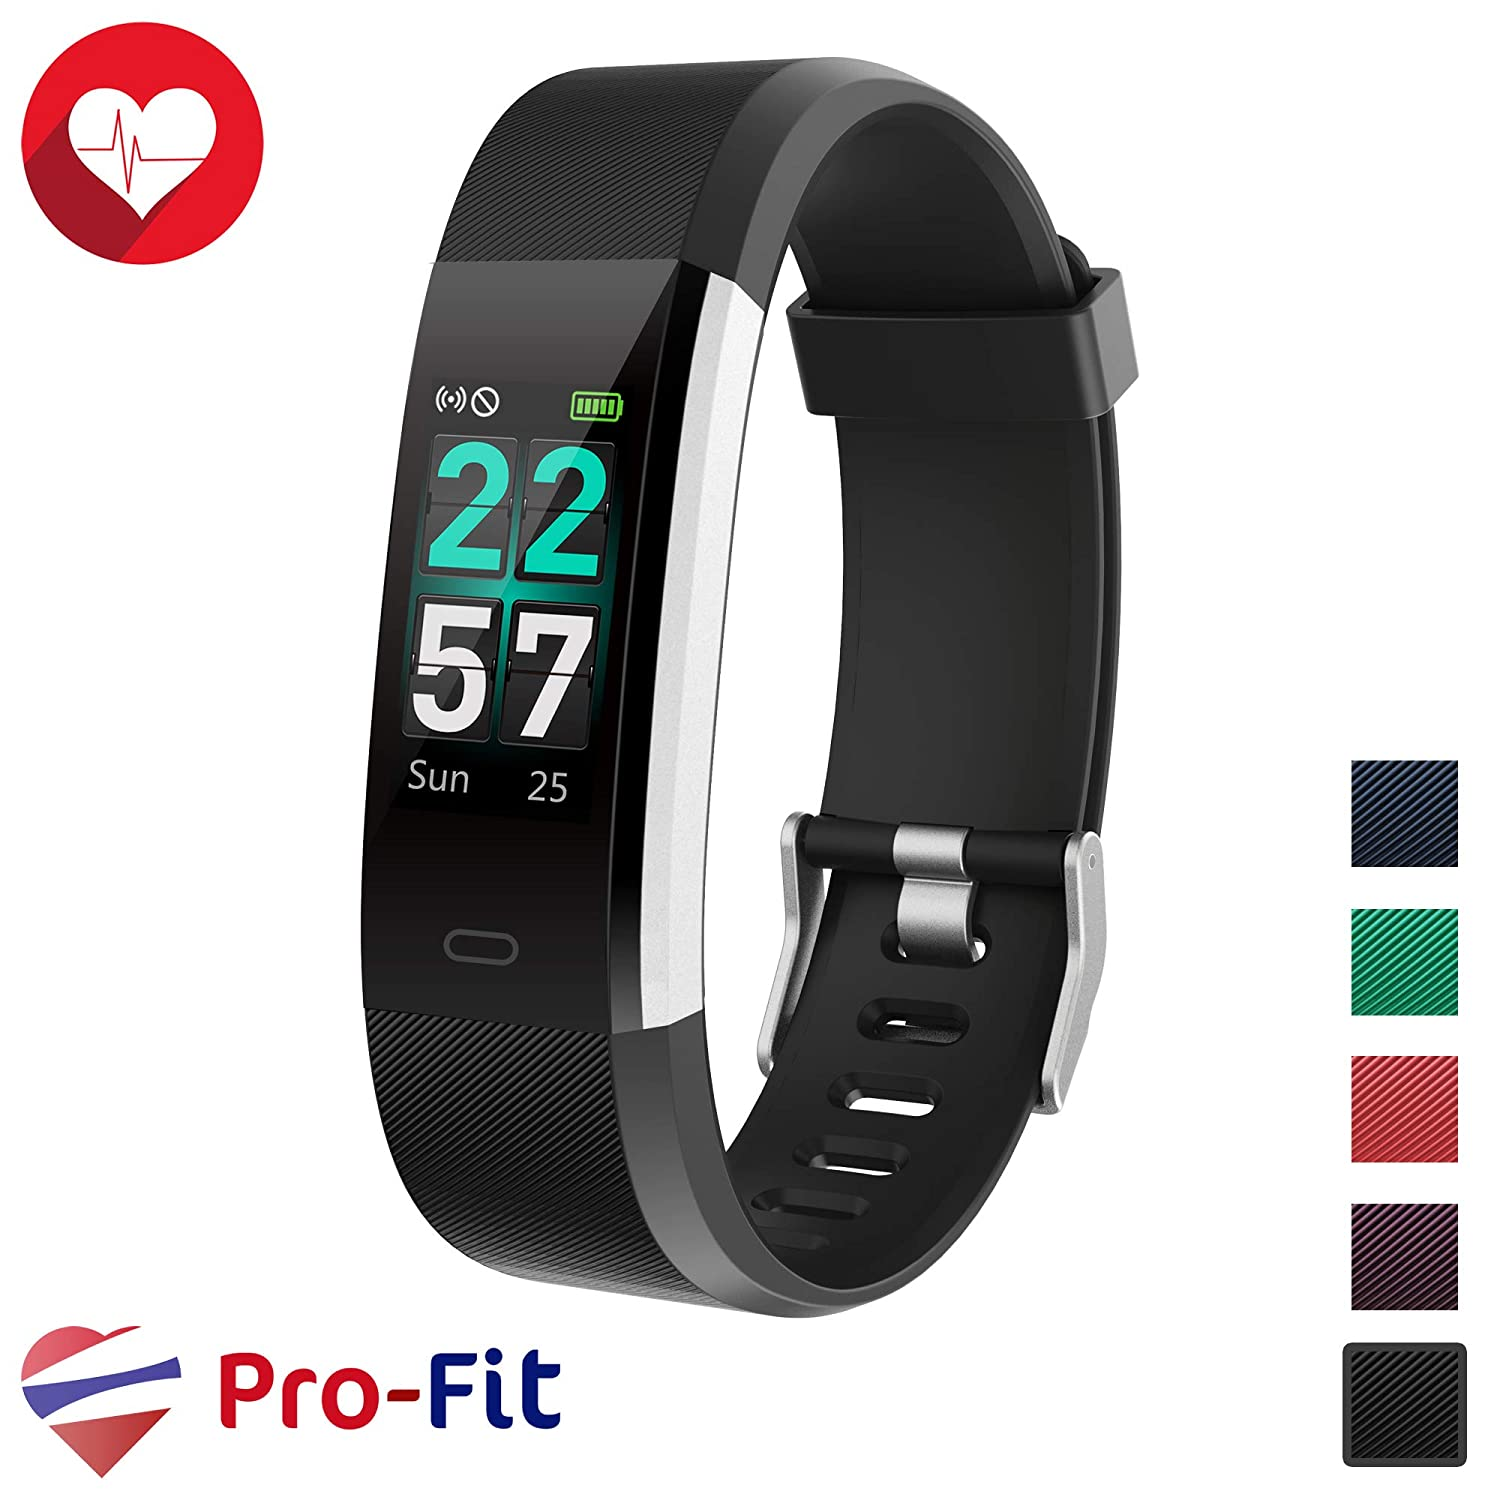 Pro-Fit Smart VeryFitPro Fitness Tracker IP68 Waterproof Activity Tracker  Heart Rate Sleep Monitor (ID115 pro)